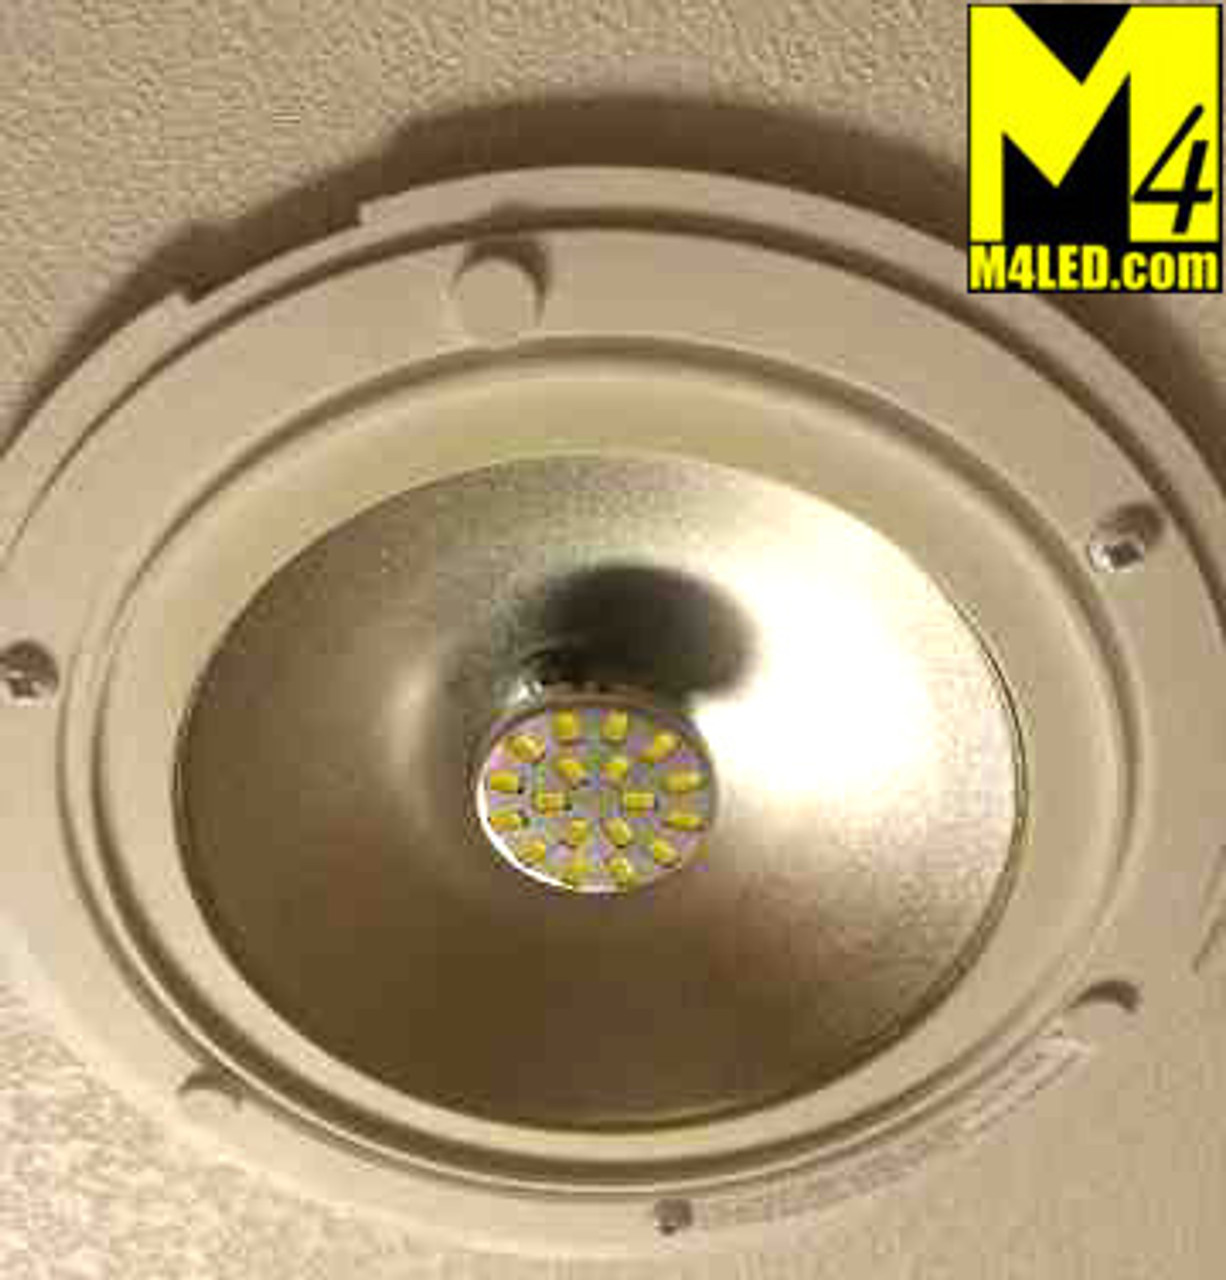 G4-18-5630-BACK-WW Warm White Elite Series G4 / T3 Samsung 5630 LEDs Back Pins to replace 20w Halogen